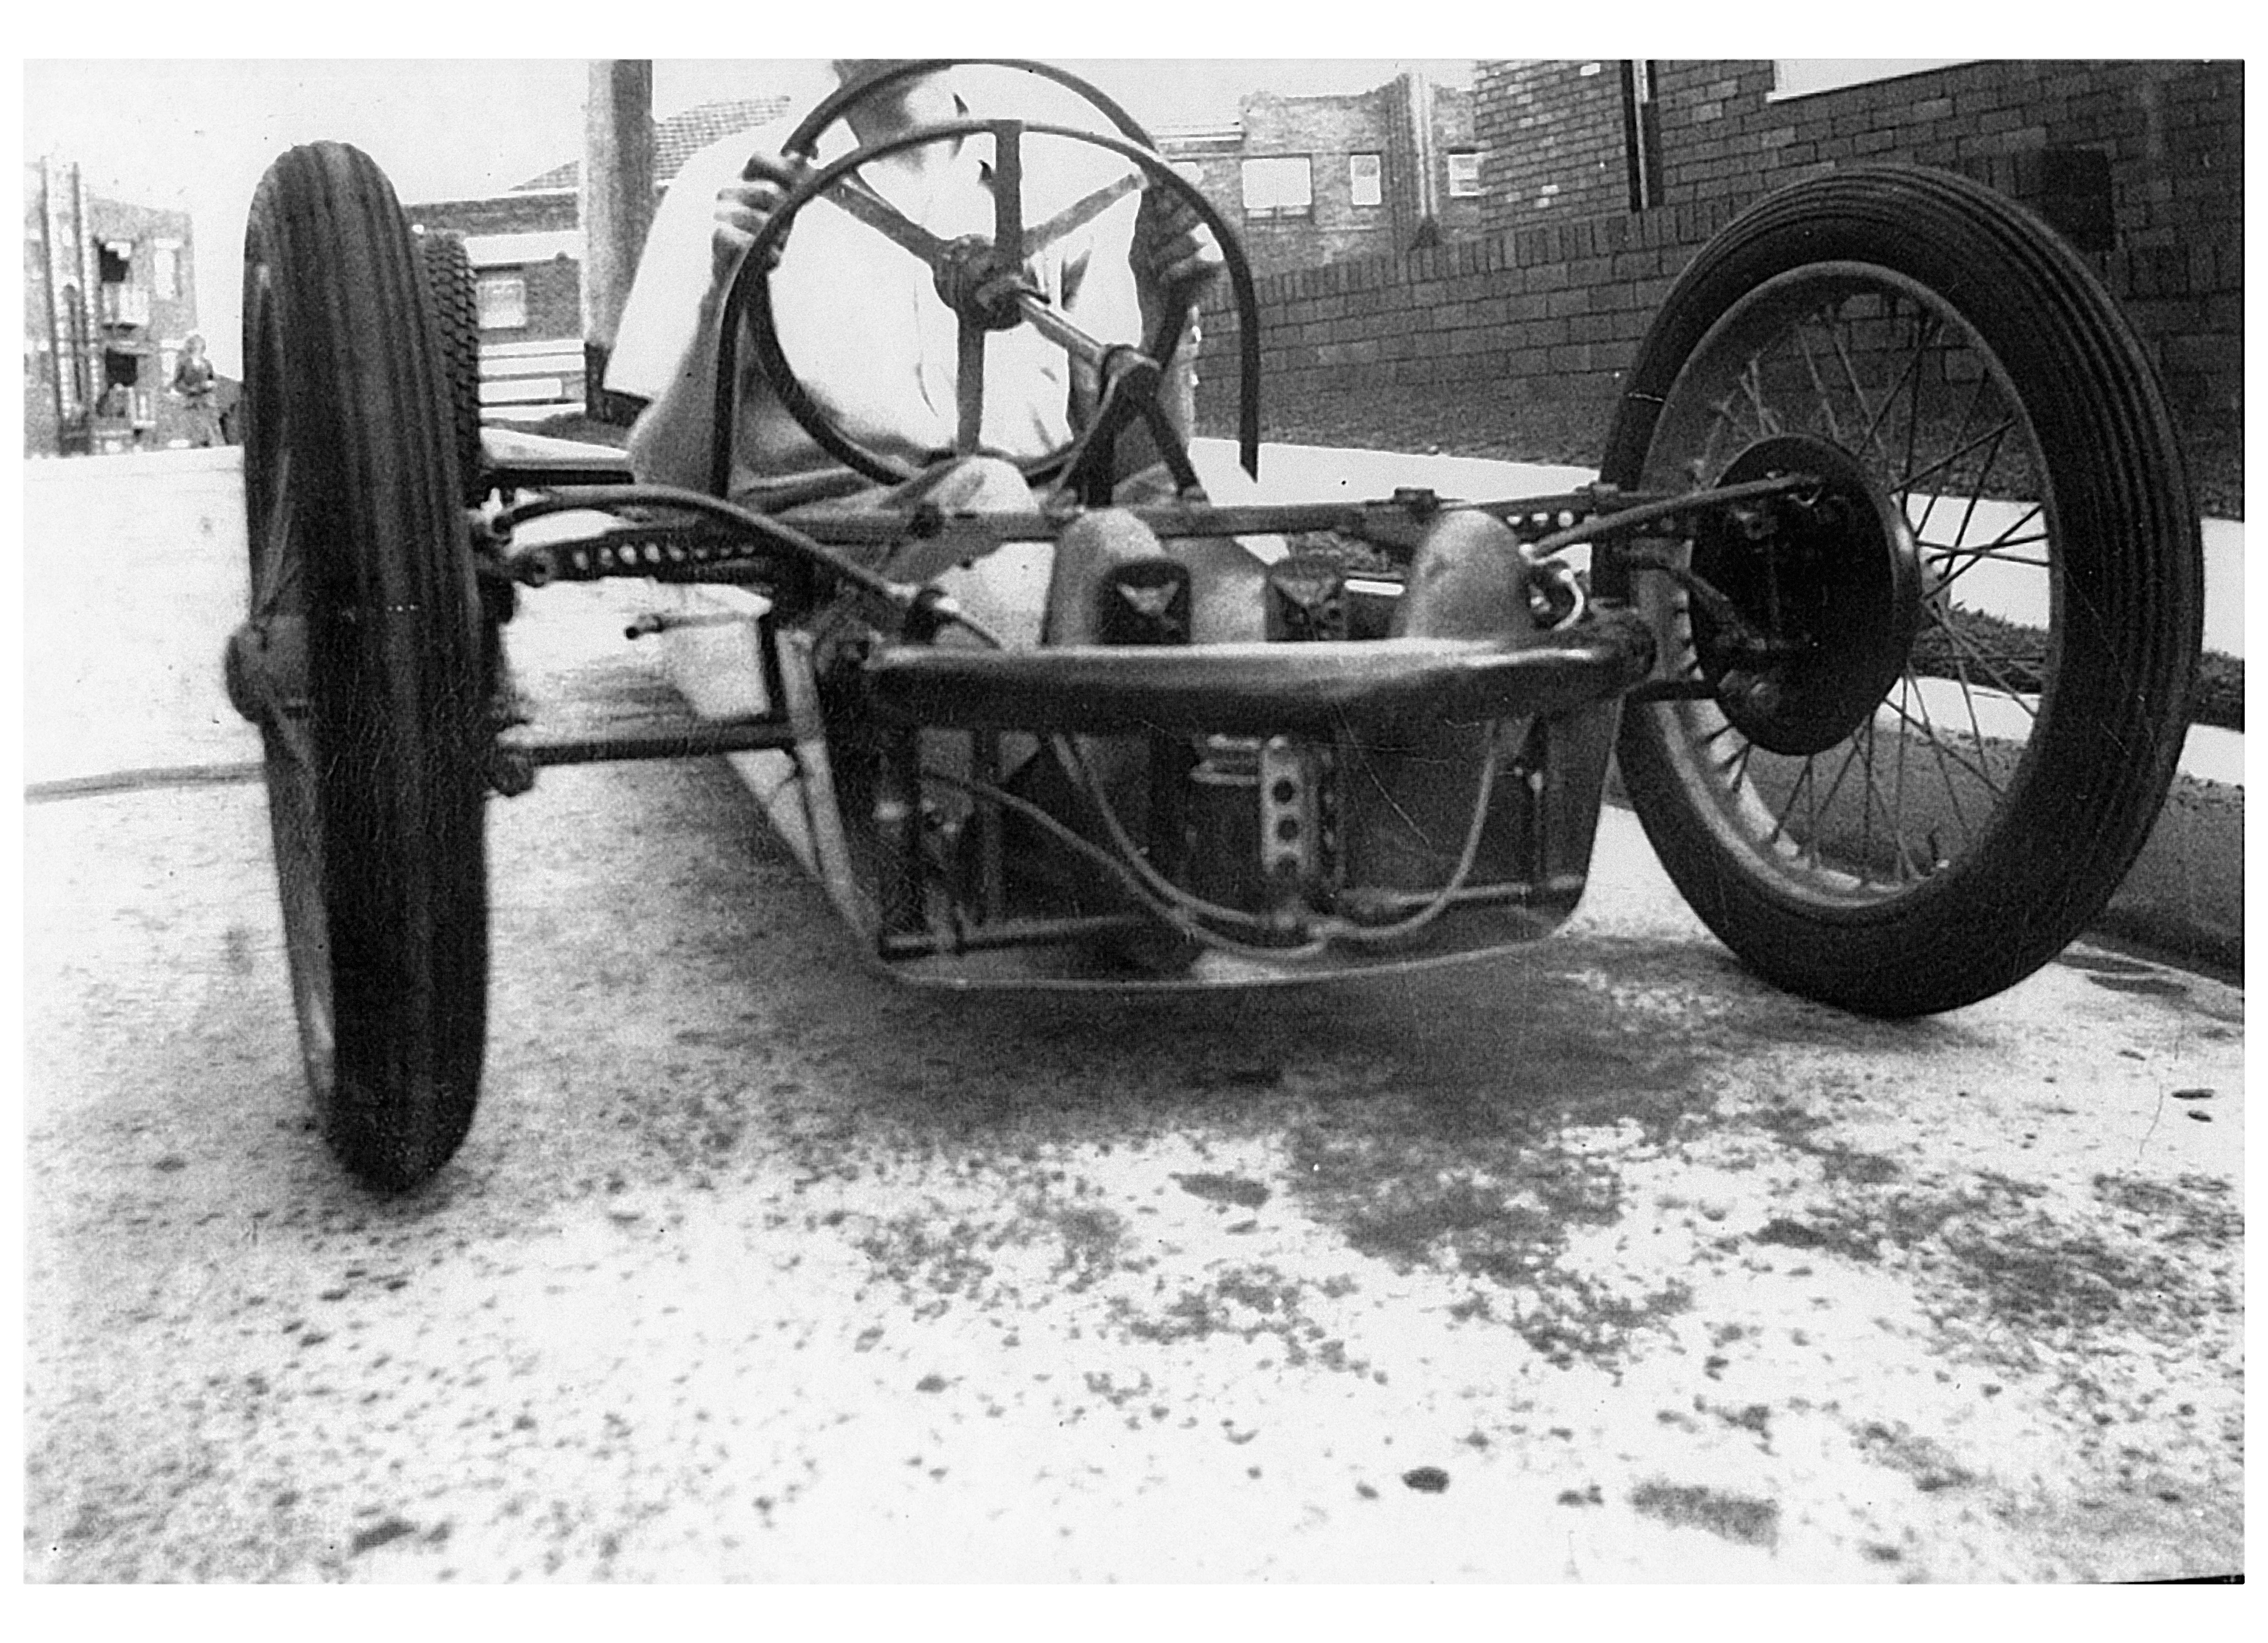 Above: Early Front View With The Large Diameter Wheels And Motorcycle Tyres  And No Dampers.